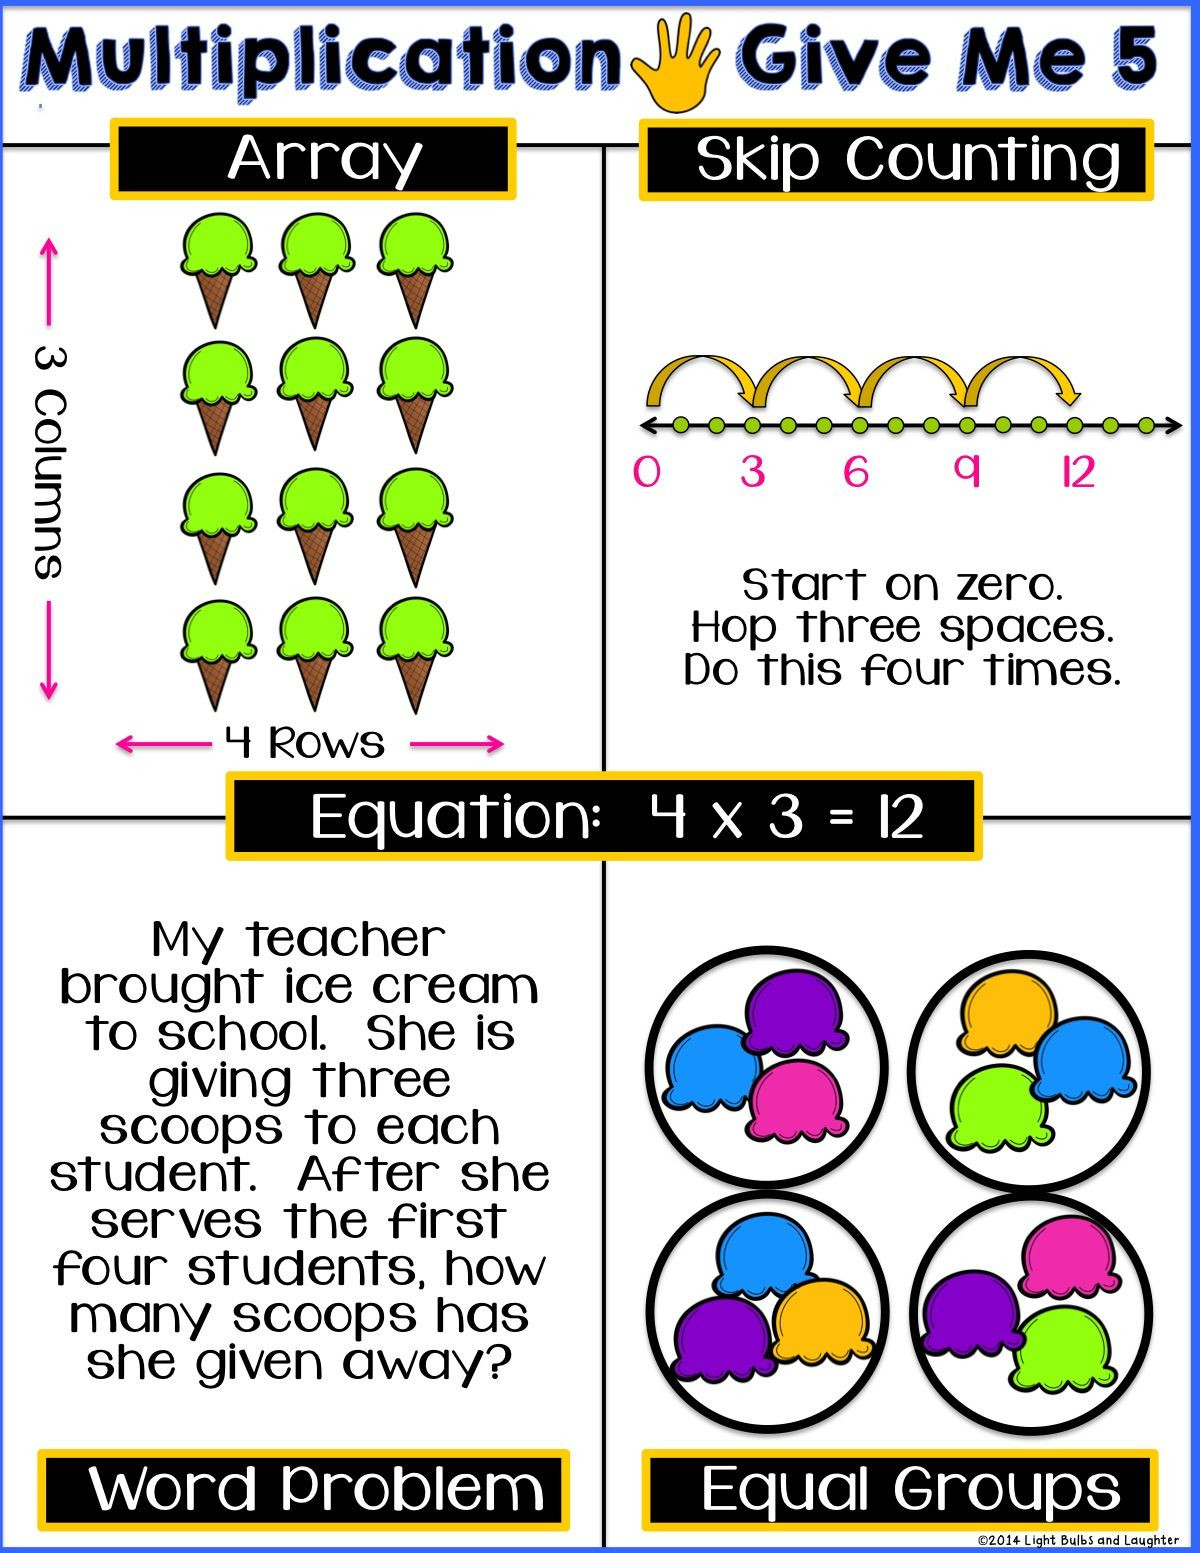 Equal Groups Worksheets 3rd Grade Free Multiplication Give Me 5 Poster